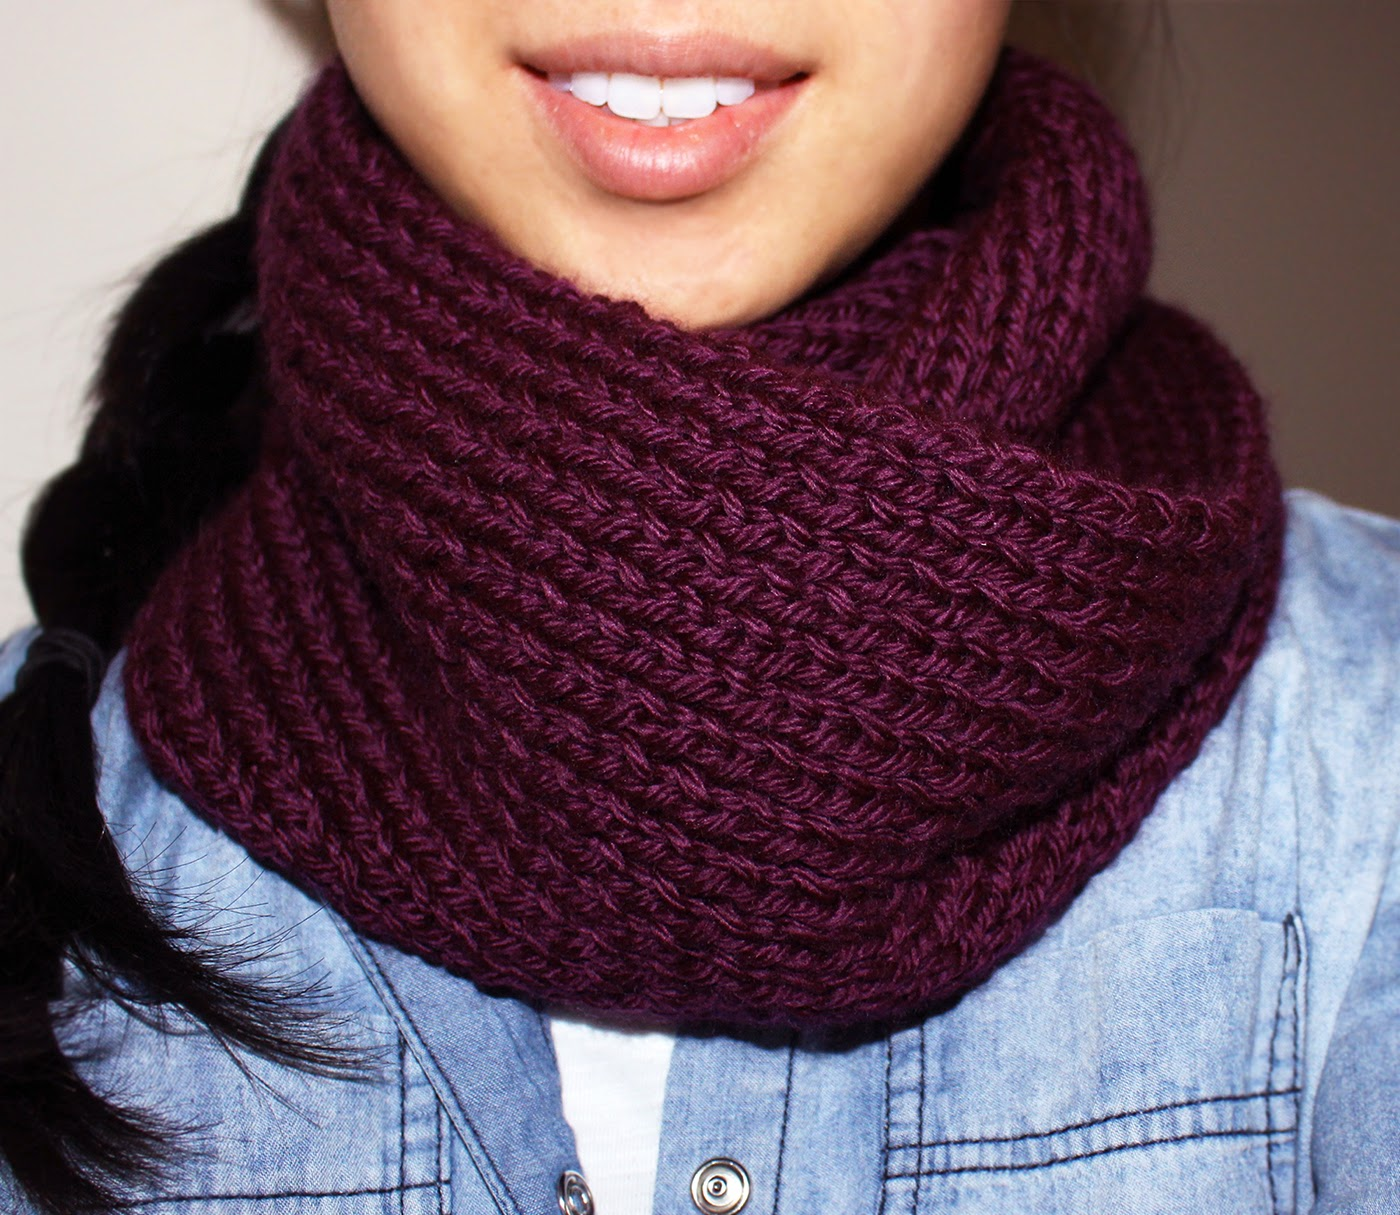 Knitting Stitches For Scarves : Purllin: Acai Infinity Circle Scarf [free knitting pattern]